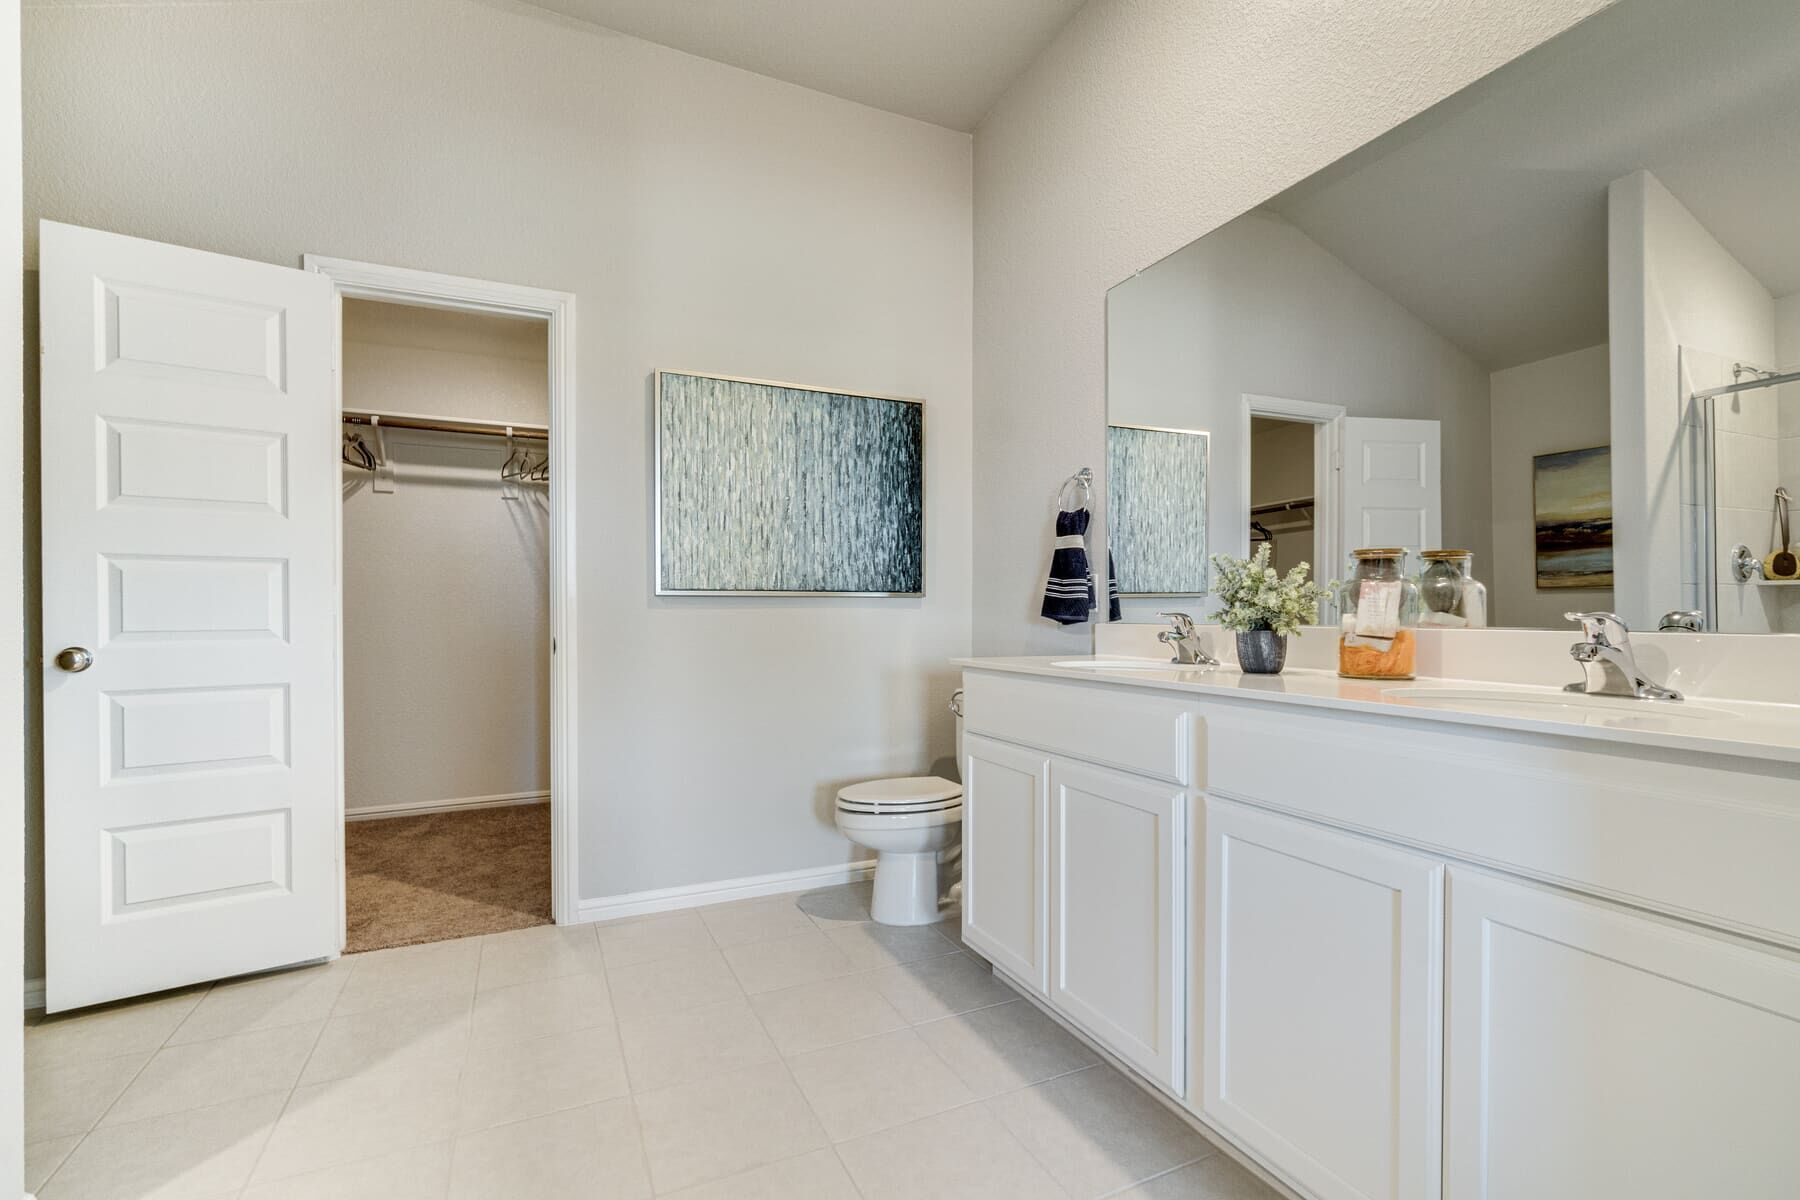 Bathroom featured in the Pizarro By M/I Homes in Fort Worth, TX